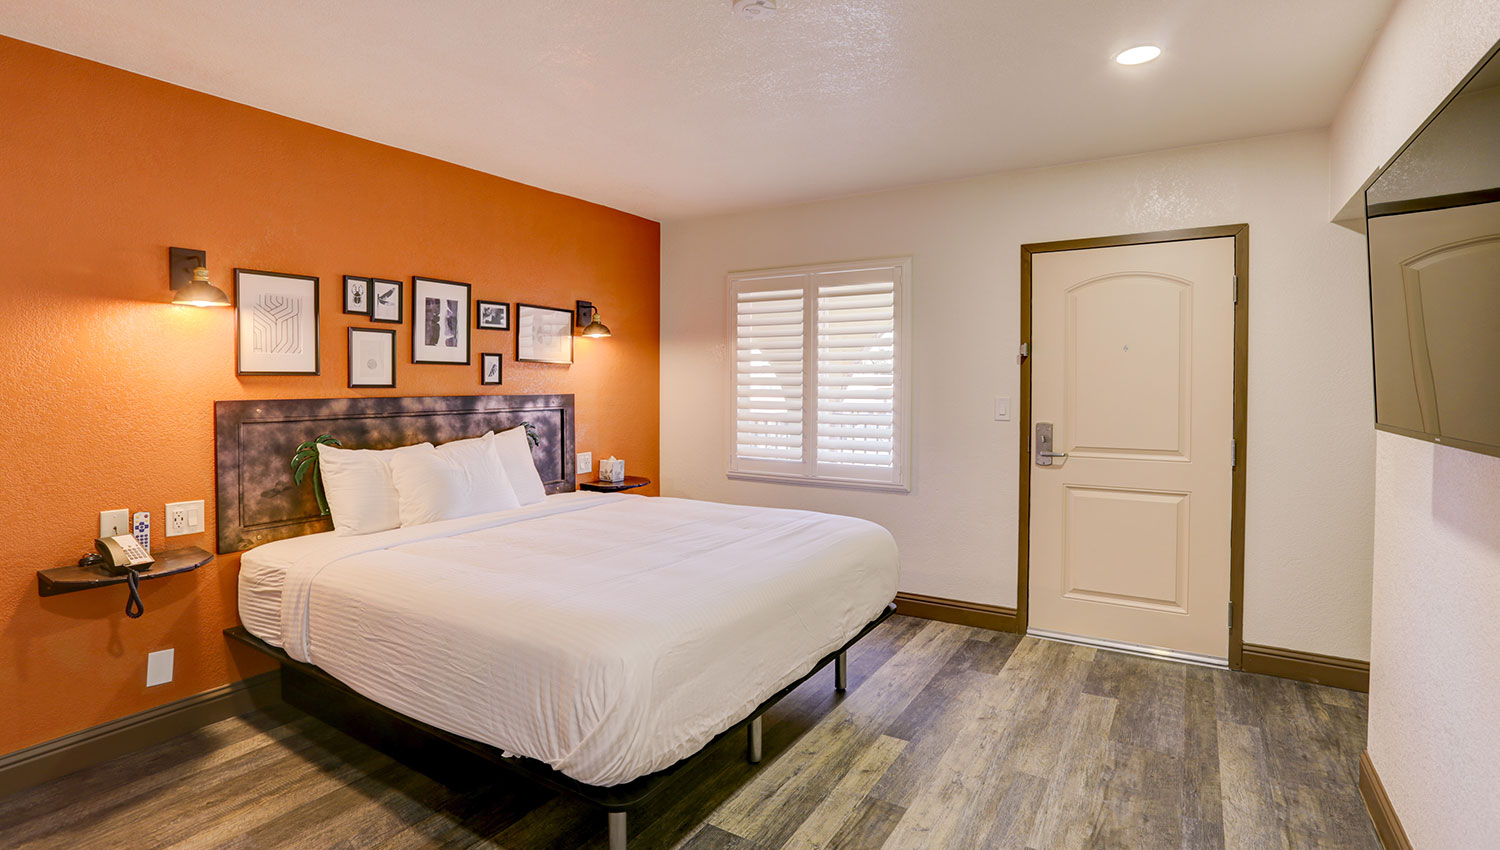 BOUTIQUE GUEST ROOMS LOCATED IN THE HEART OF SACRAMENTO